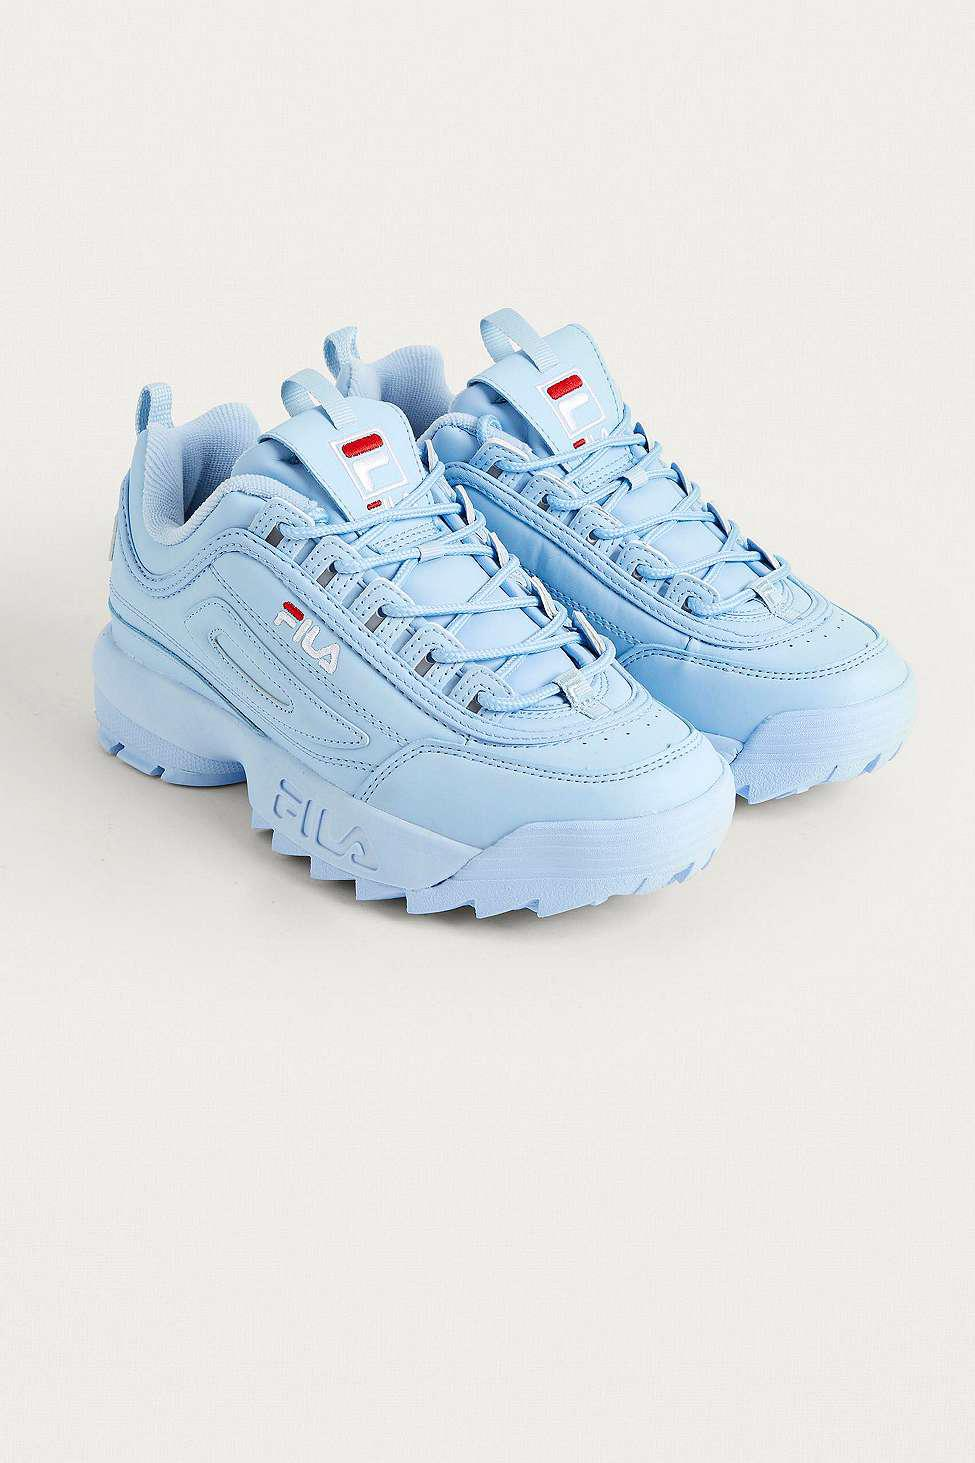 dcca5acf9c03 Fila Disruptor Baby Blue Trainers - Womens Uk 4 in Blue - Lyst